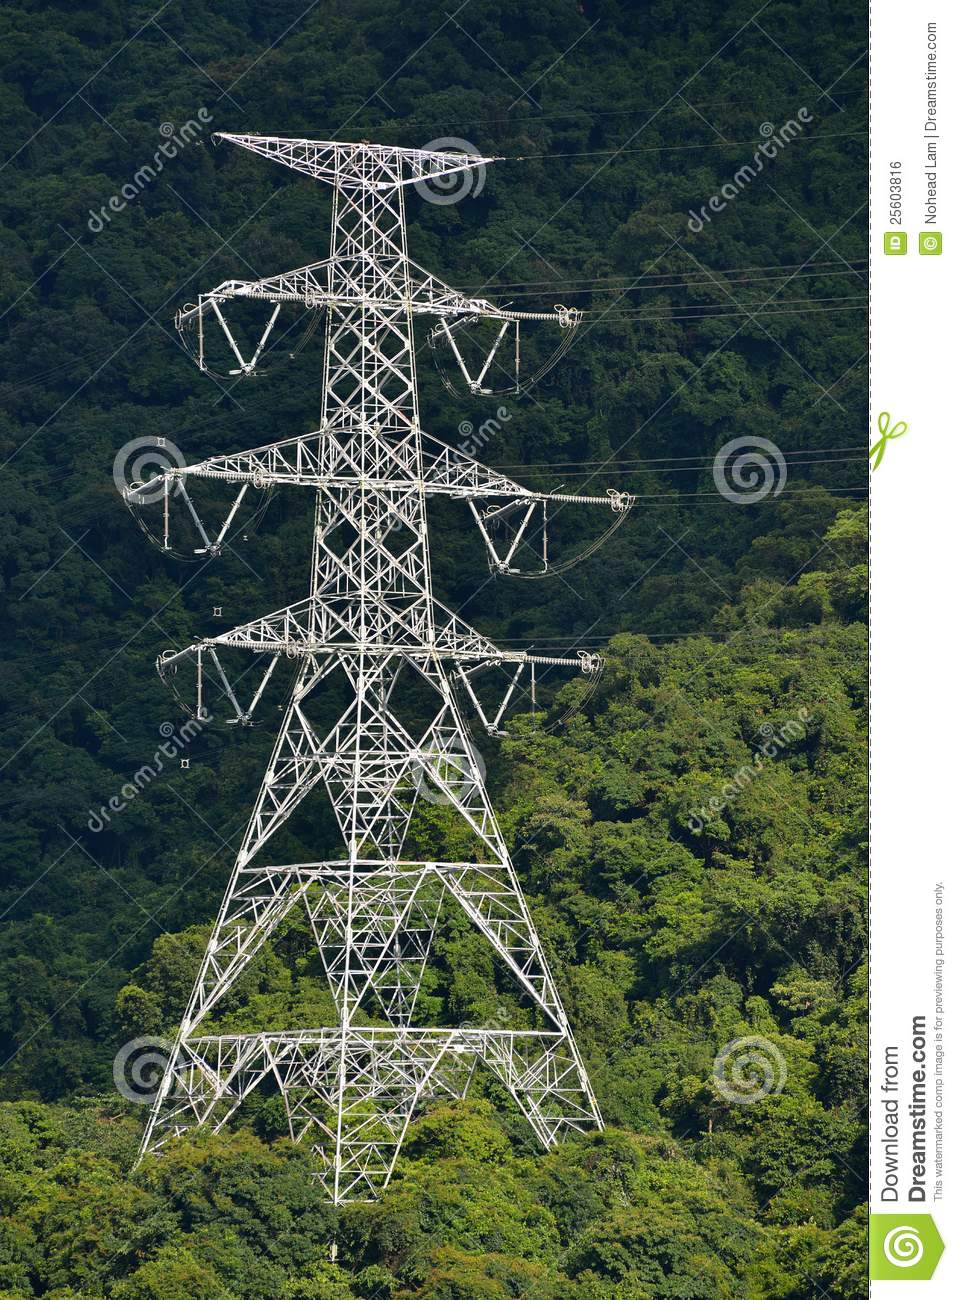 Electrical towers